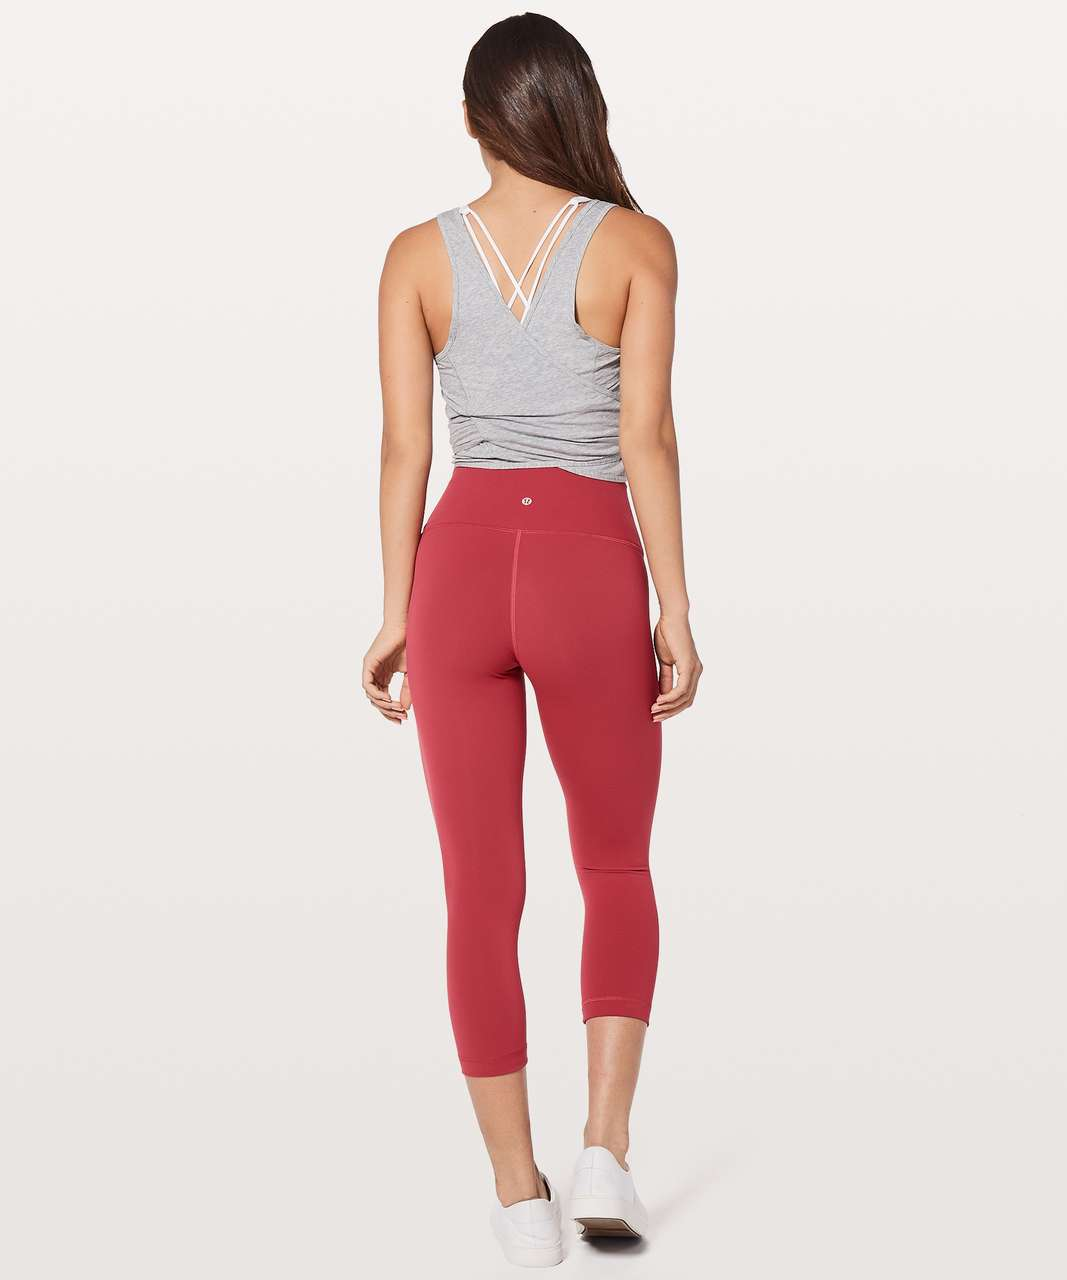 "Lululemon Wunder Under Crop (Hi-Rise) 21"" - Vintage Rose"